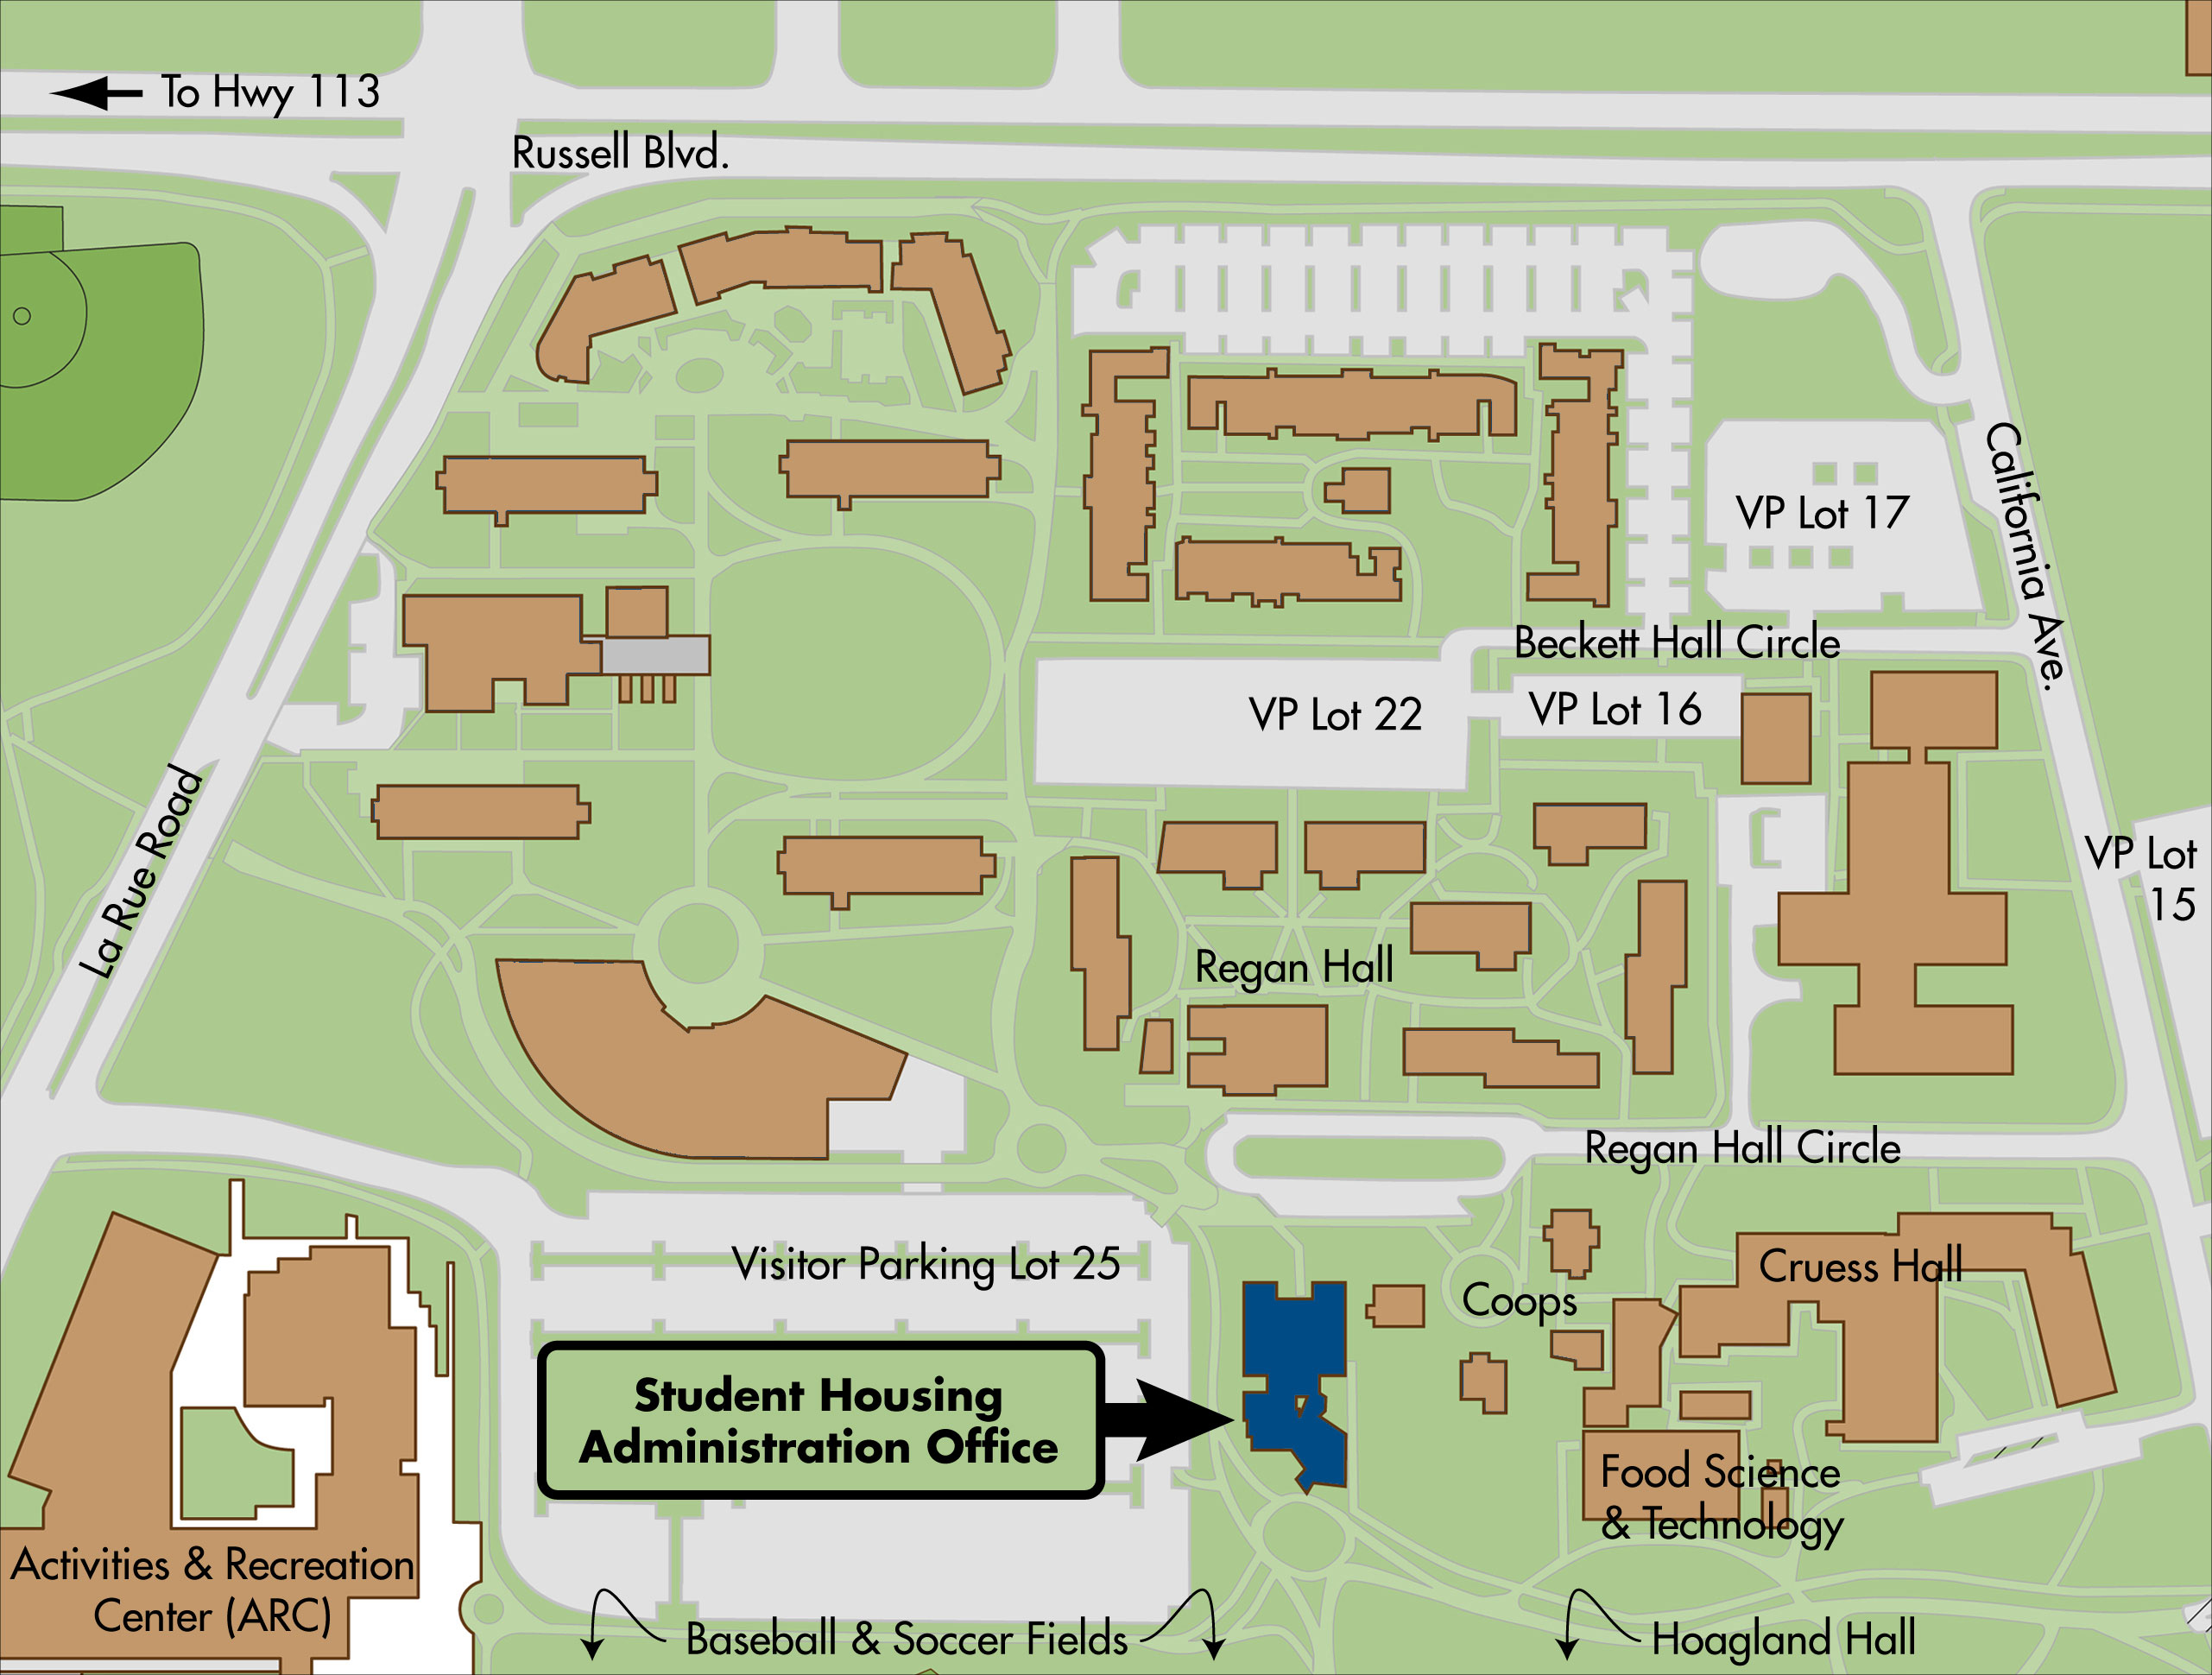 Map of the Student Housing Adminstration Building, located on the eastern edge of Visitor Parking Lot 25 in the northwest corner of campus.